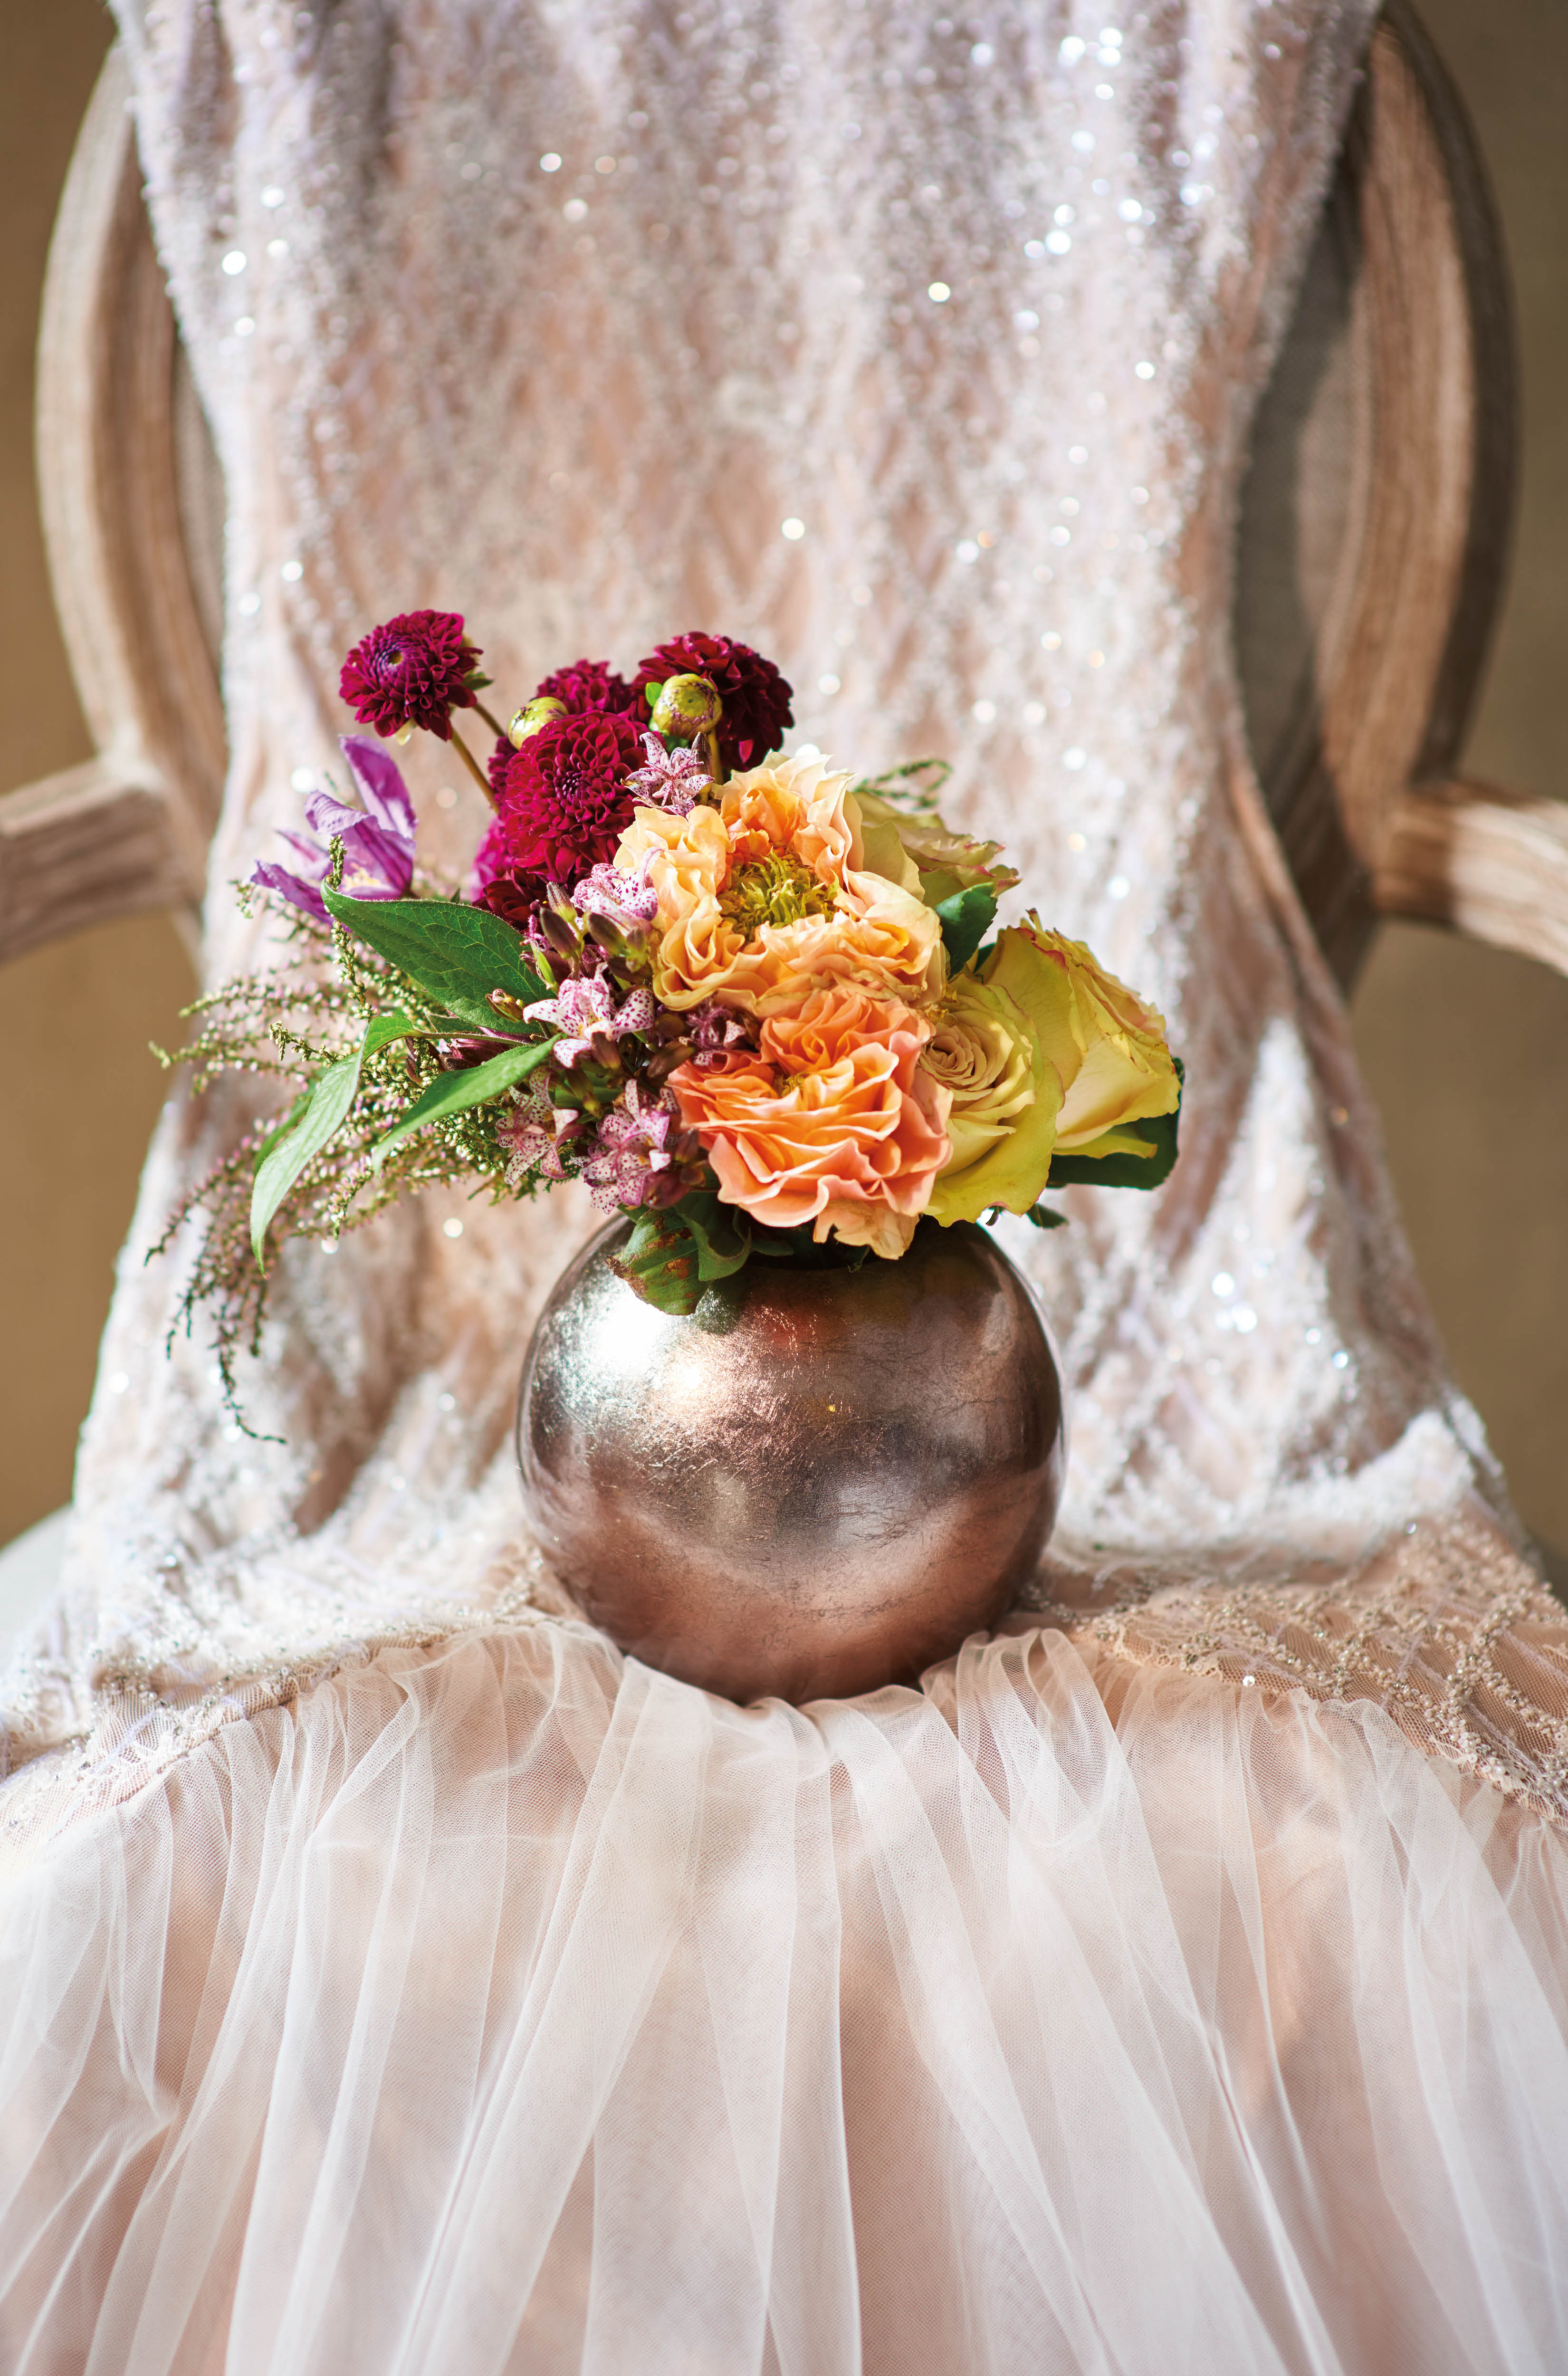 Bouquet of roses, dahlias  and garden roses by Armani/Fiori; dress by Rania Hatoum; chair from Bowerbird Home